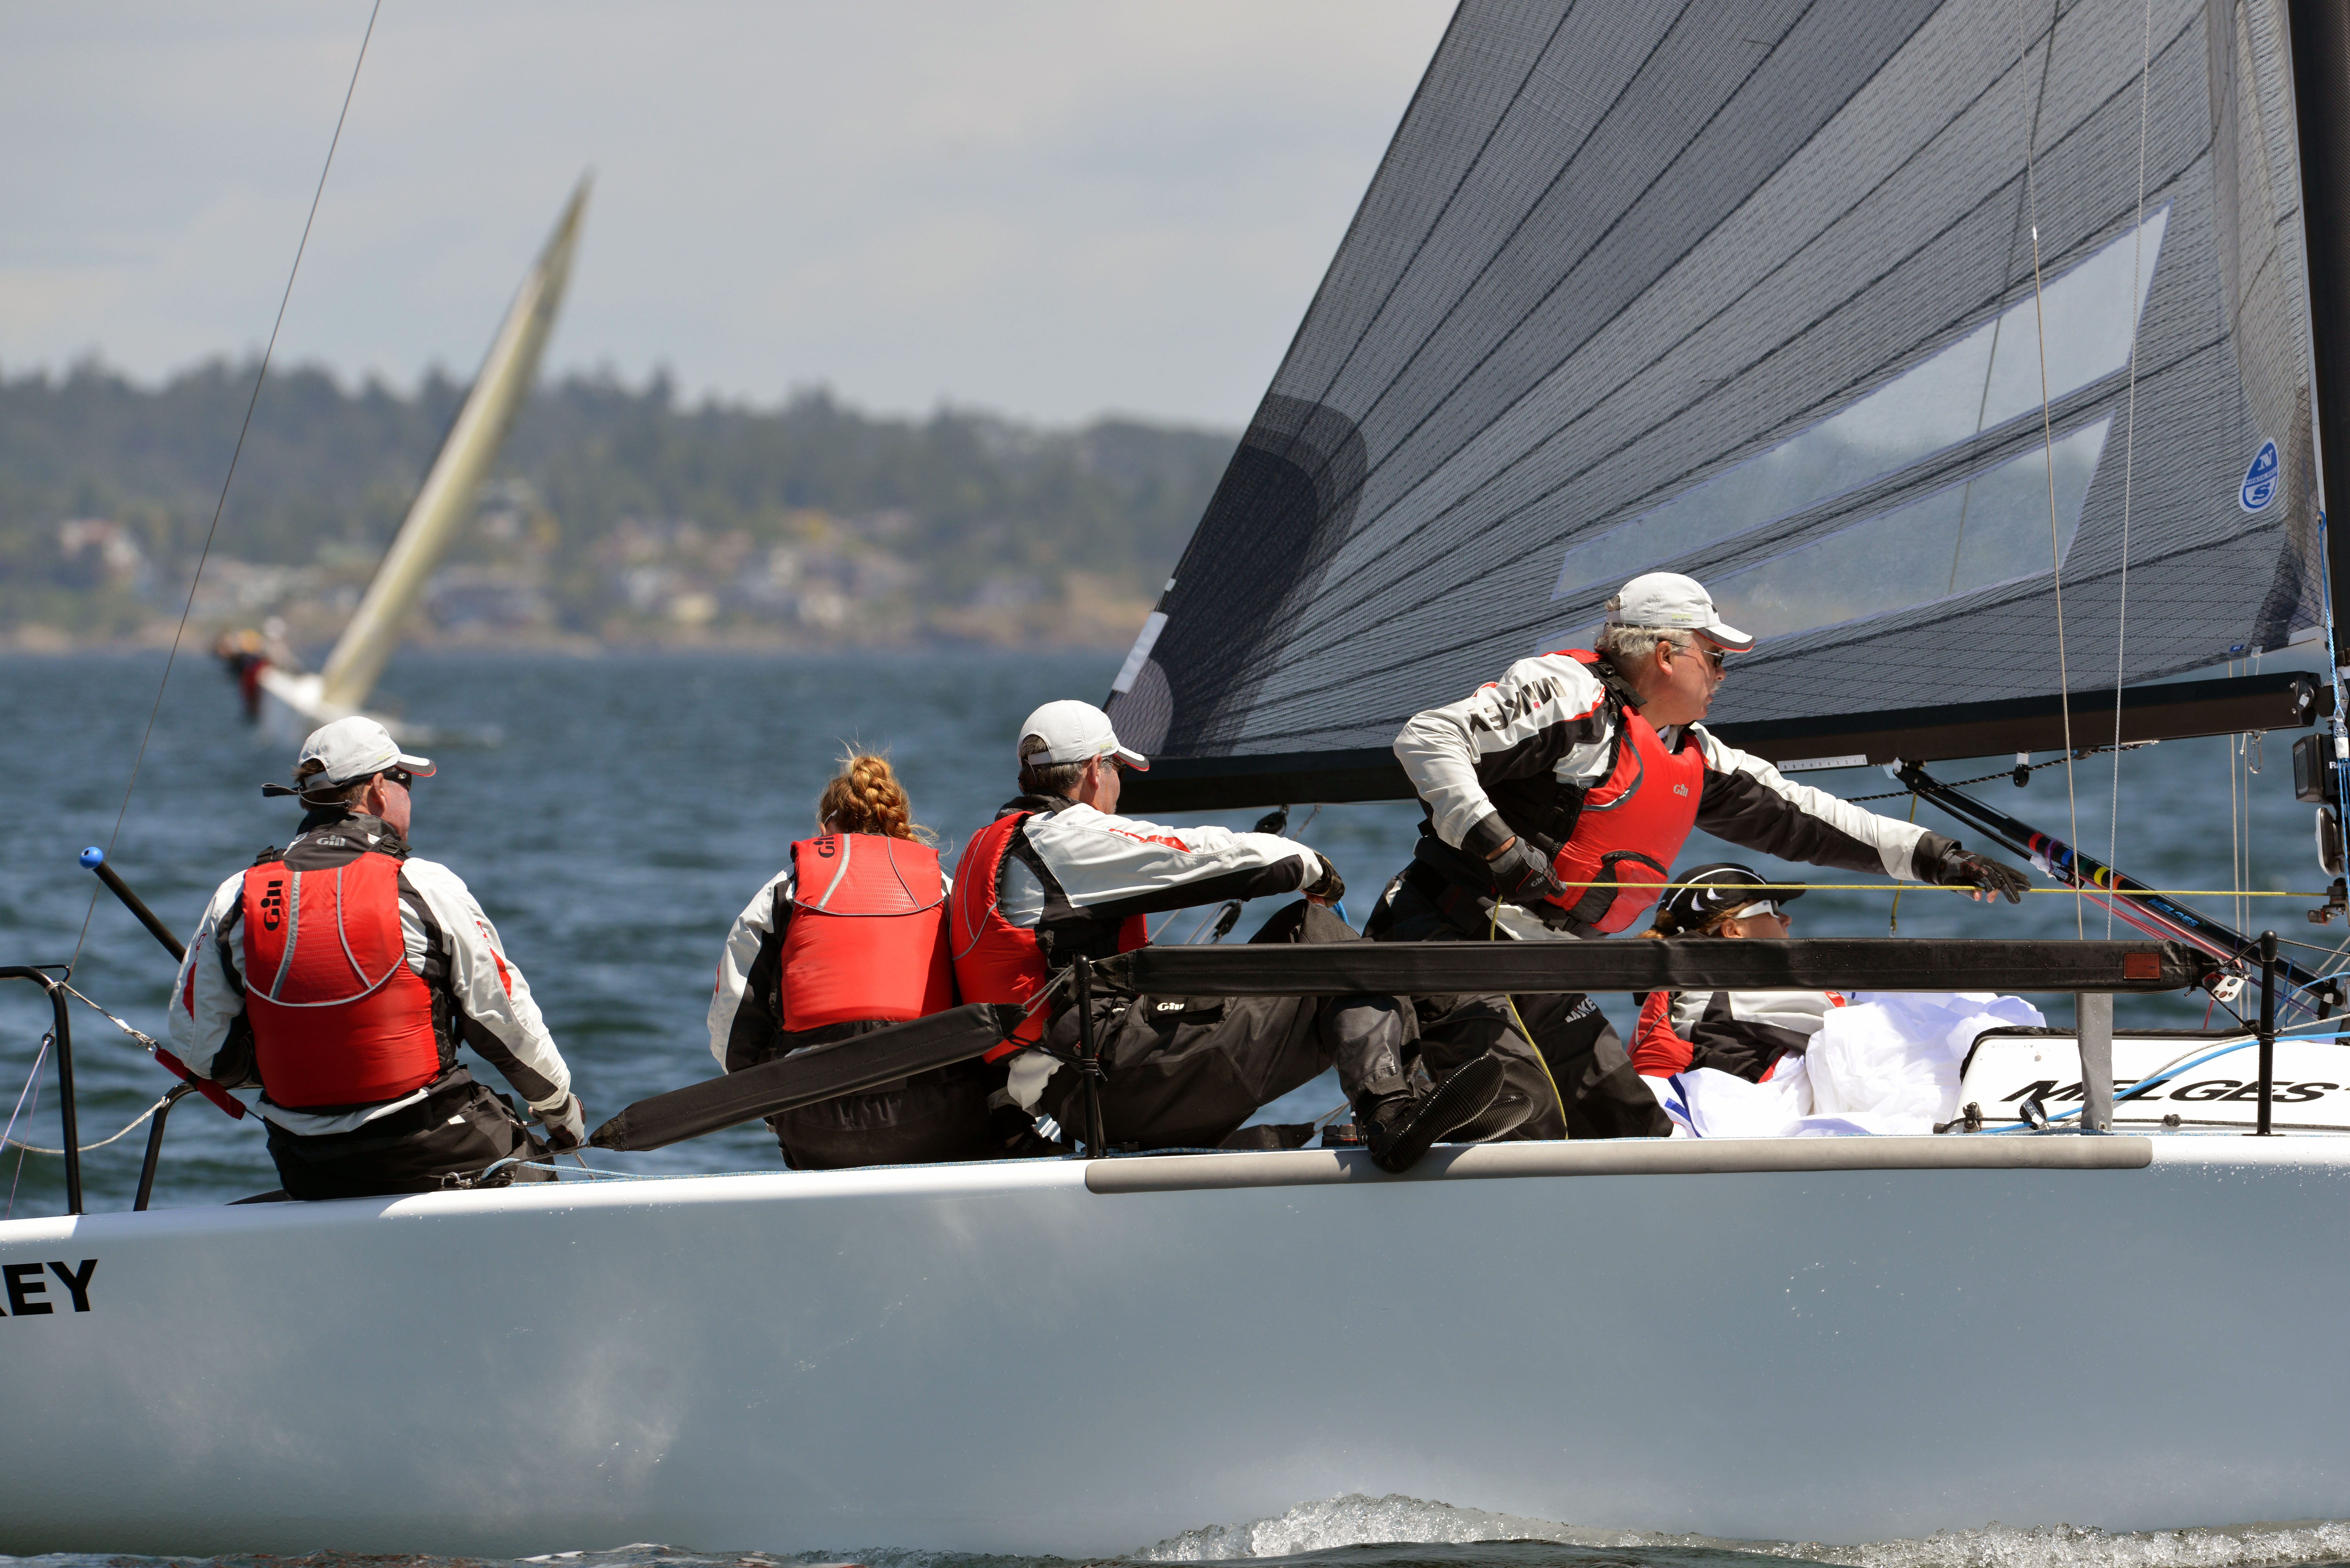 1st_Mickey_Black_Hoisting - 2014 Melges 24  Canadian National Championship